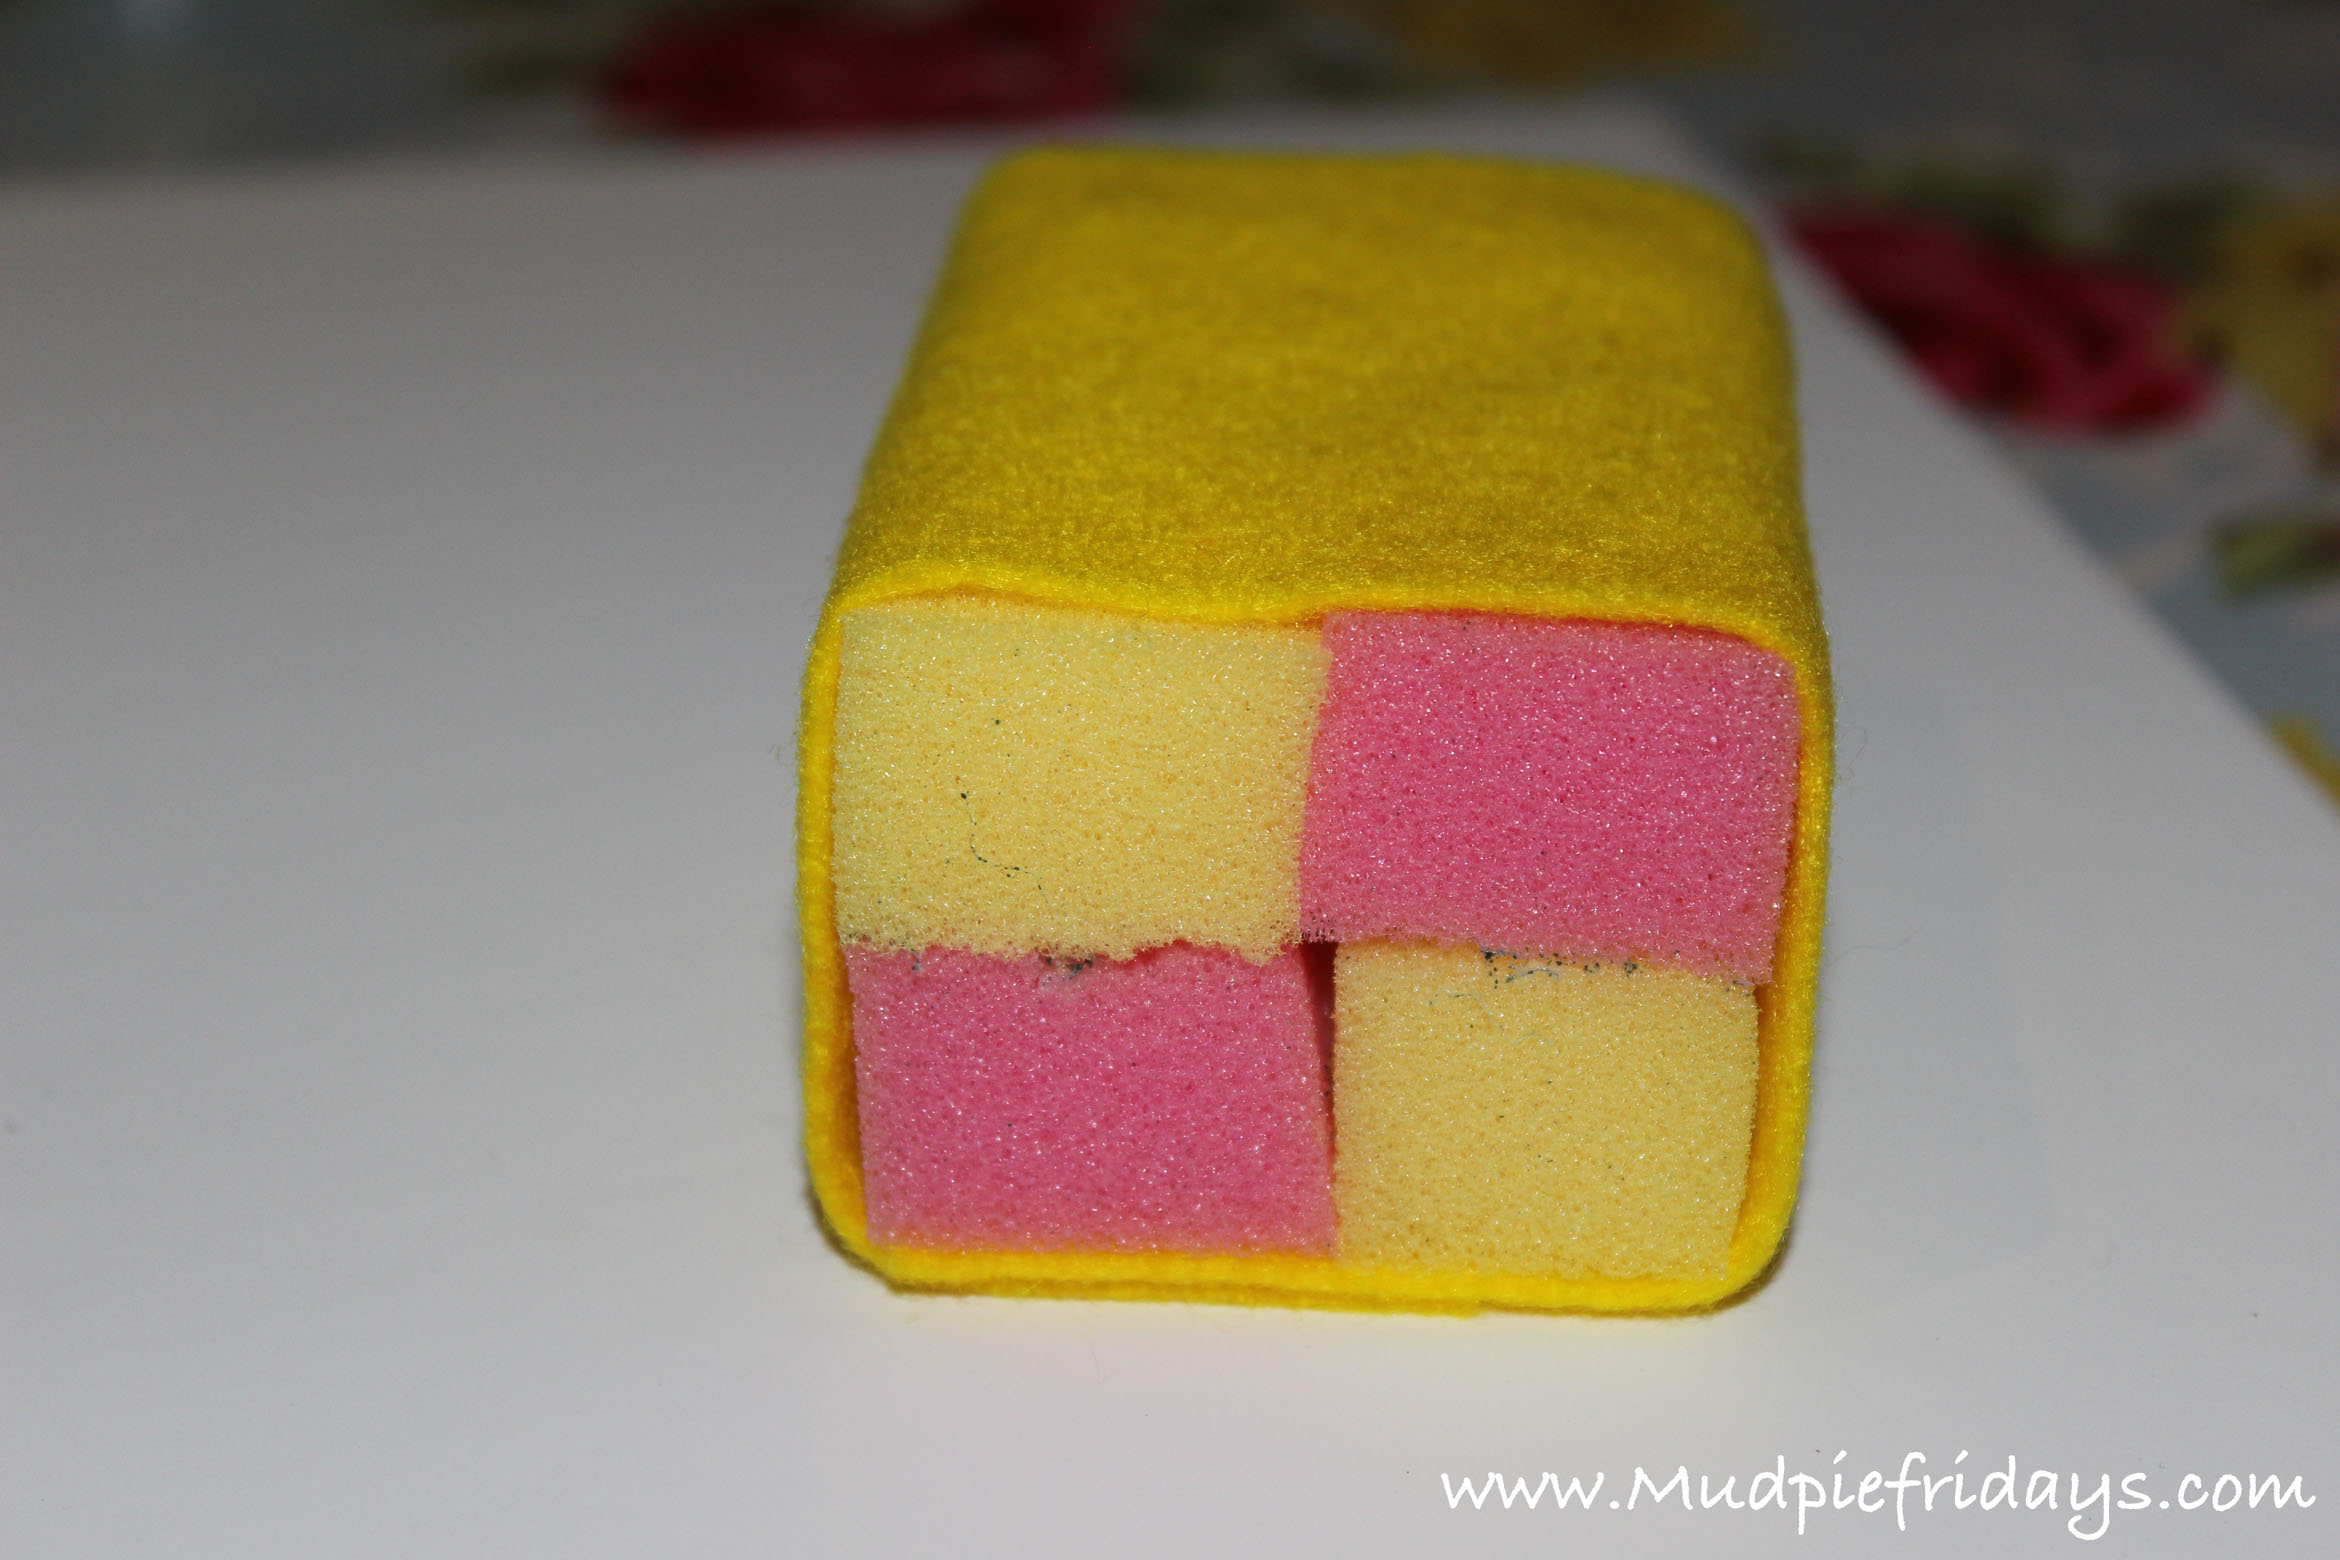 DIY playfood sponge battenberg cake